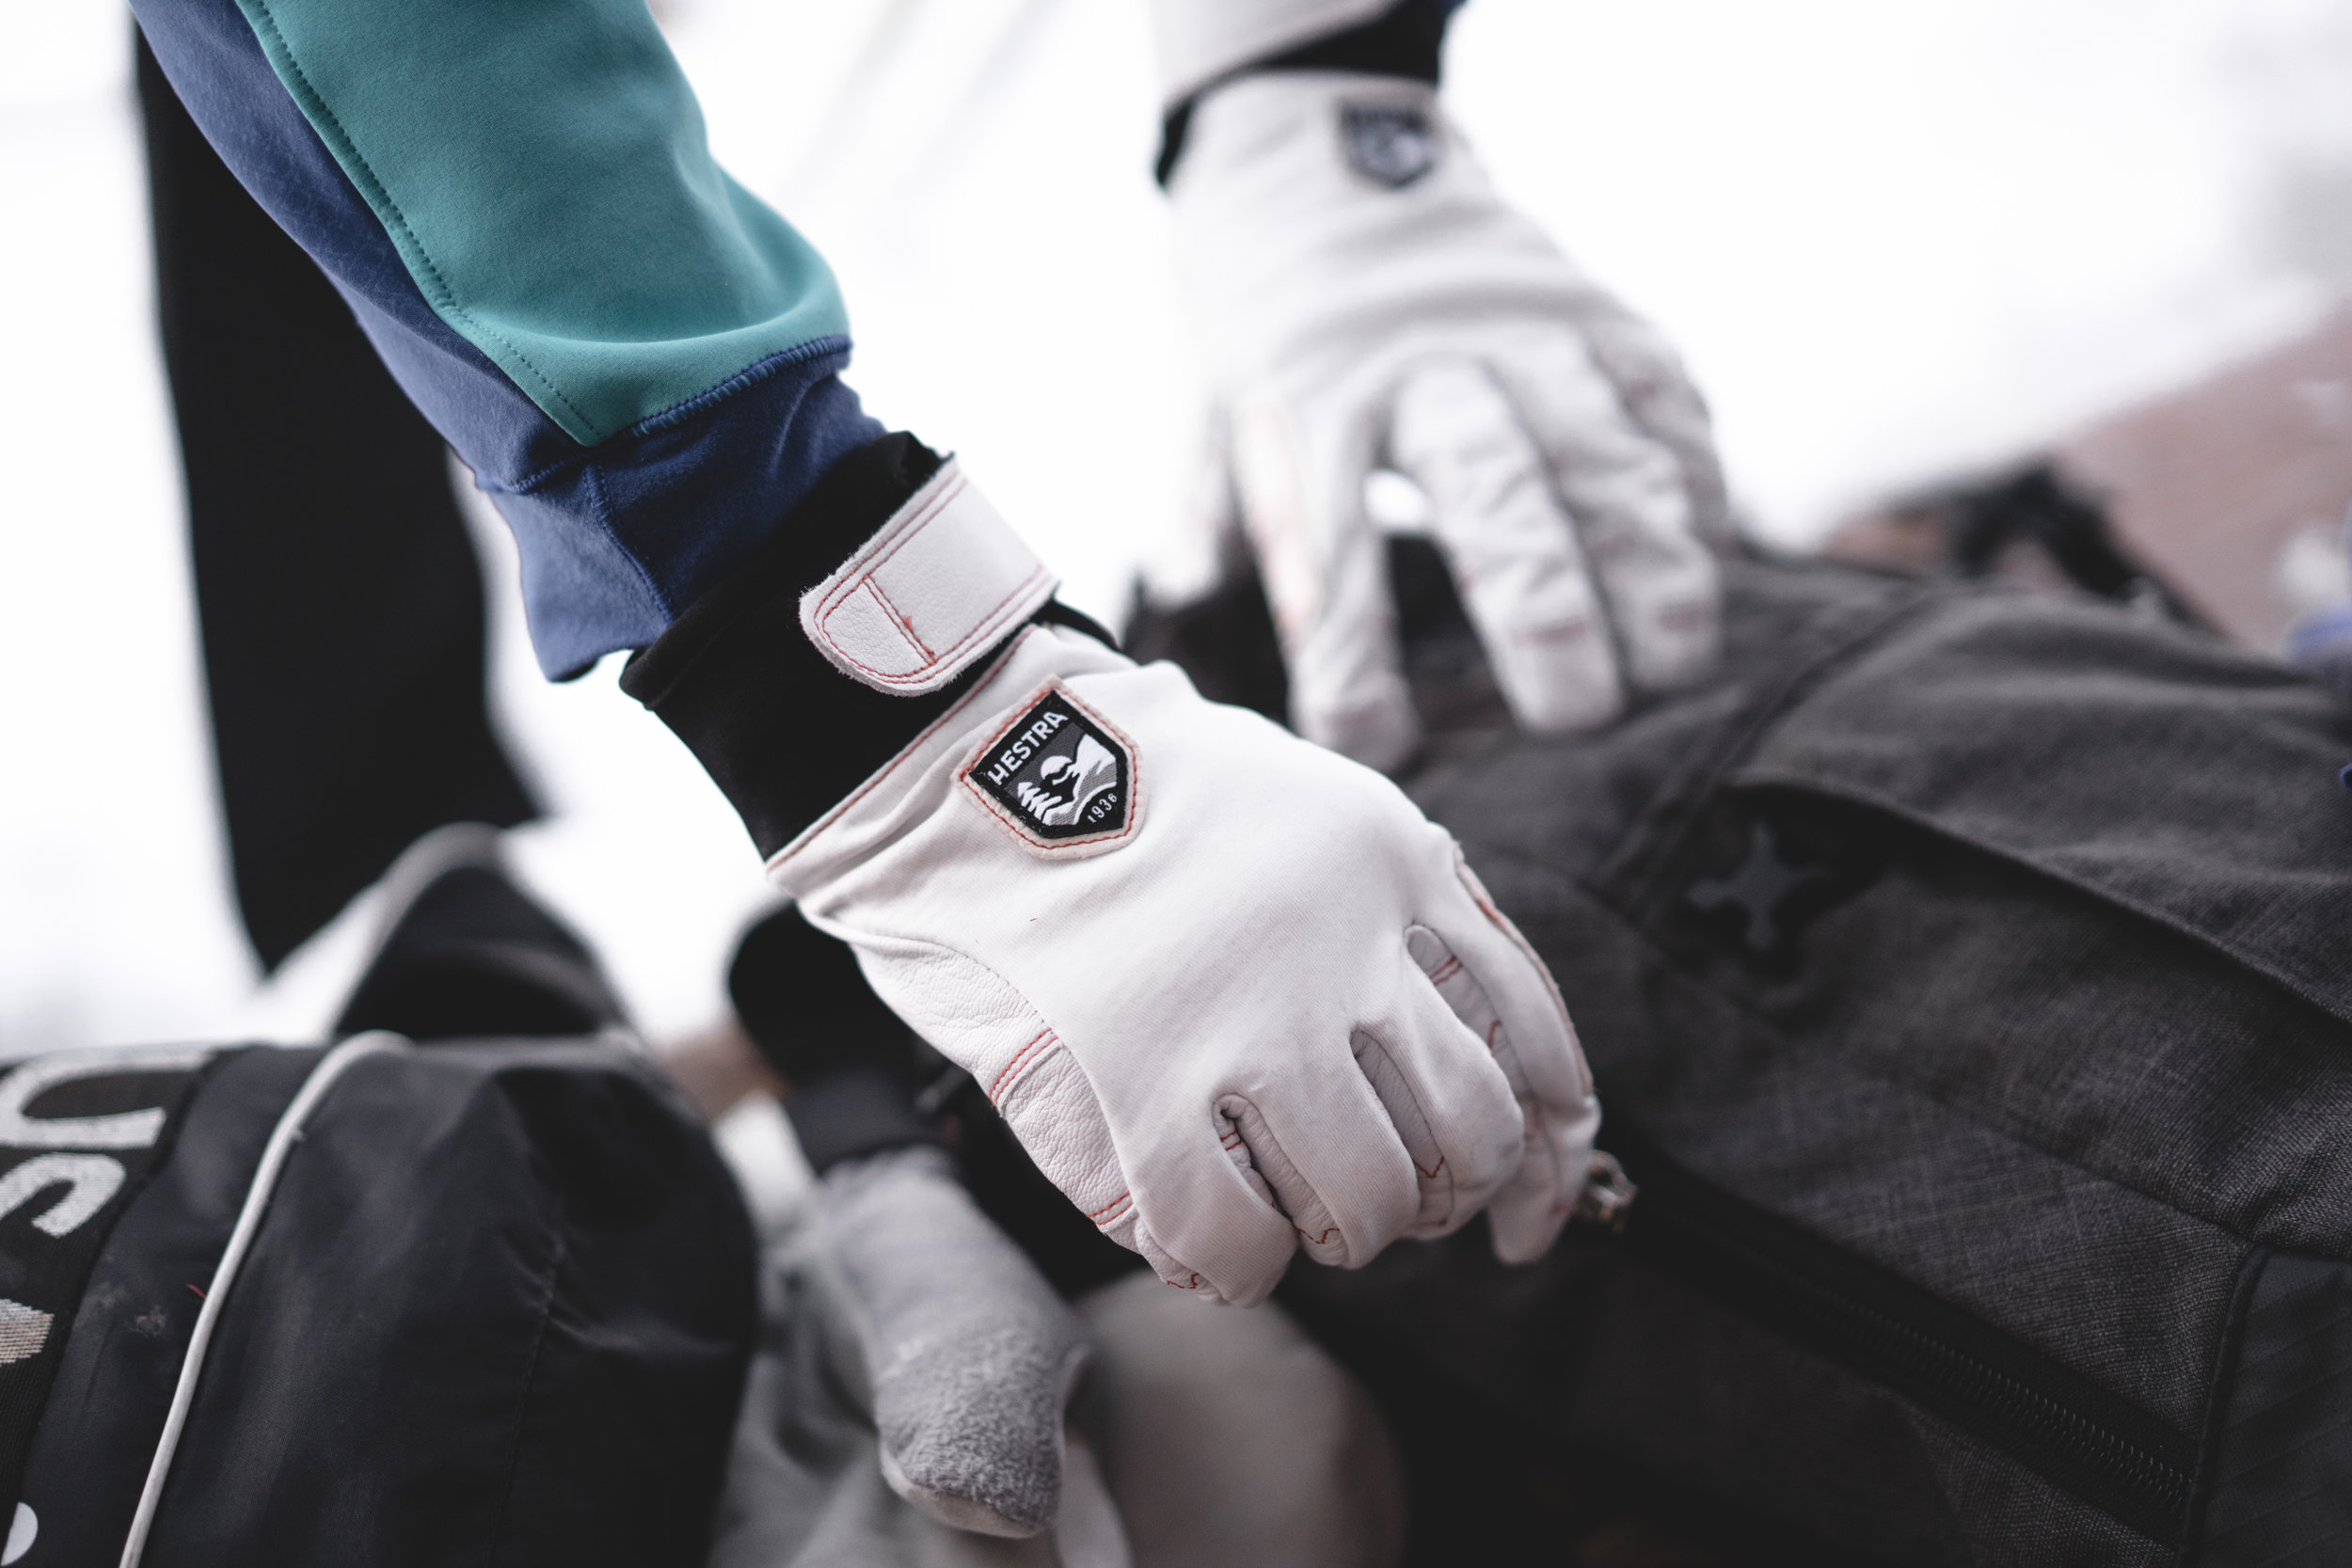 HESTRA ON THE HANDS OF THE WORLDS BEST SKIERS - Family owned Swedish company making hand-wear for the most demanding conditions.